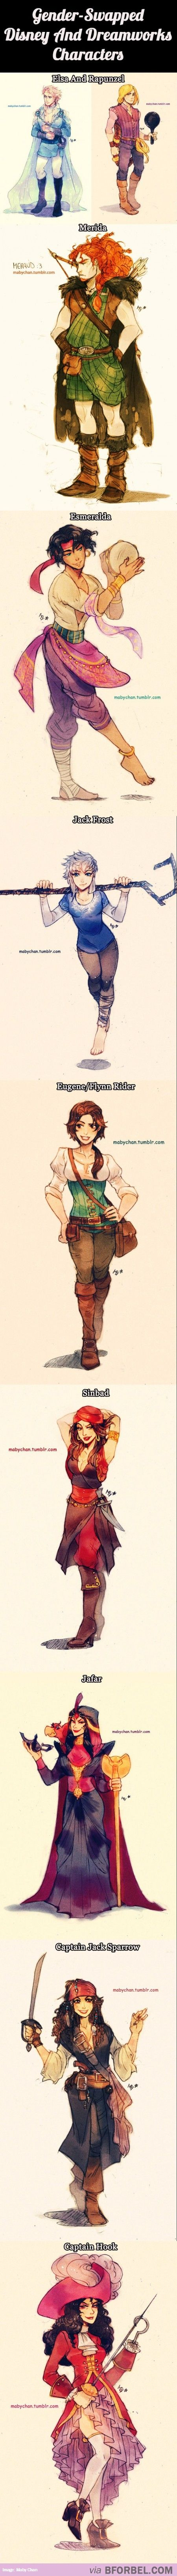 Pinning this because I now know what I want to be for Halloween. *cough cough* it's Flynn rider